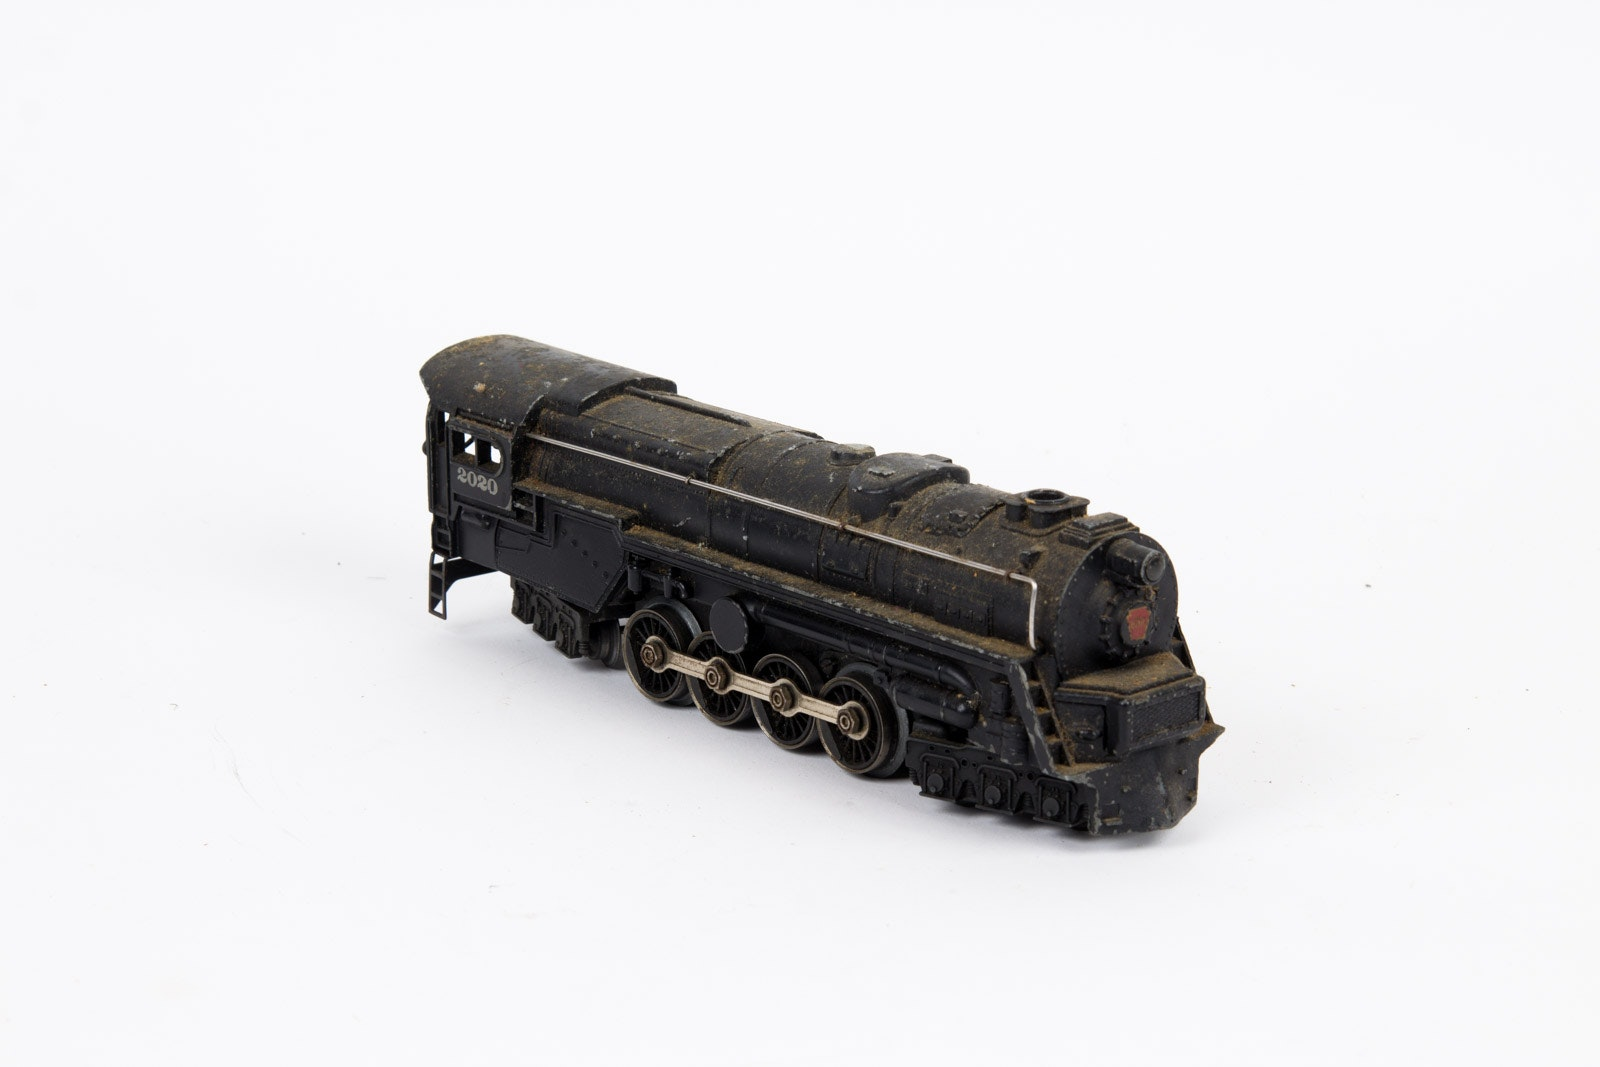 Vintage Lionel Train #2020 Steam Engine